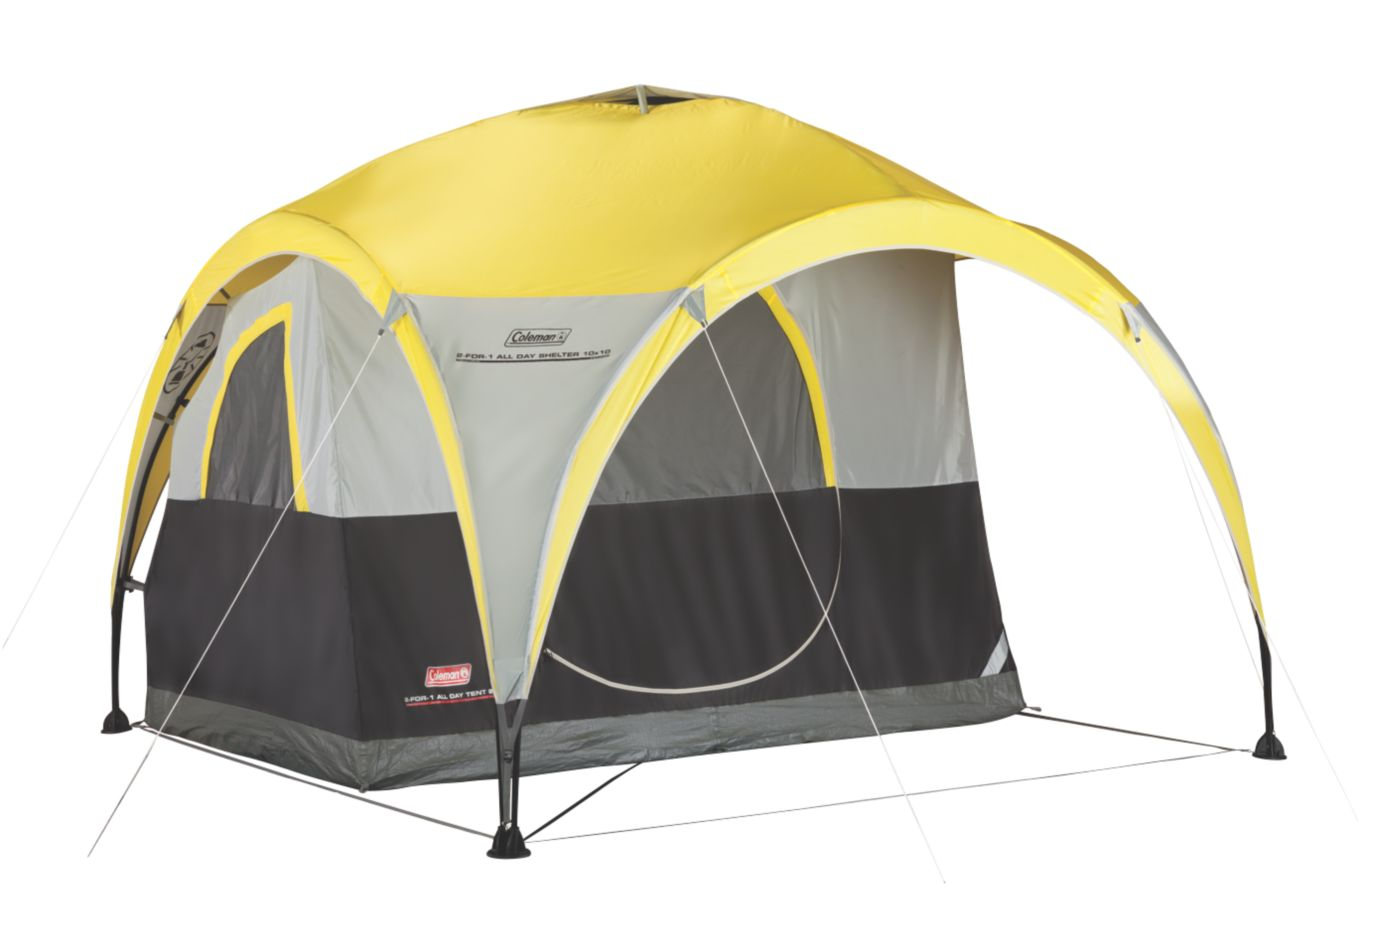 2-For-1 All Day 2-Person Shelter u0026 Tent  sc 1 st  Coleman : coleman rosewood tent - memphite.com